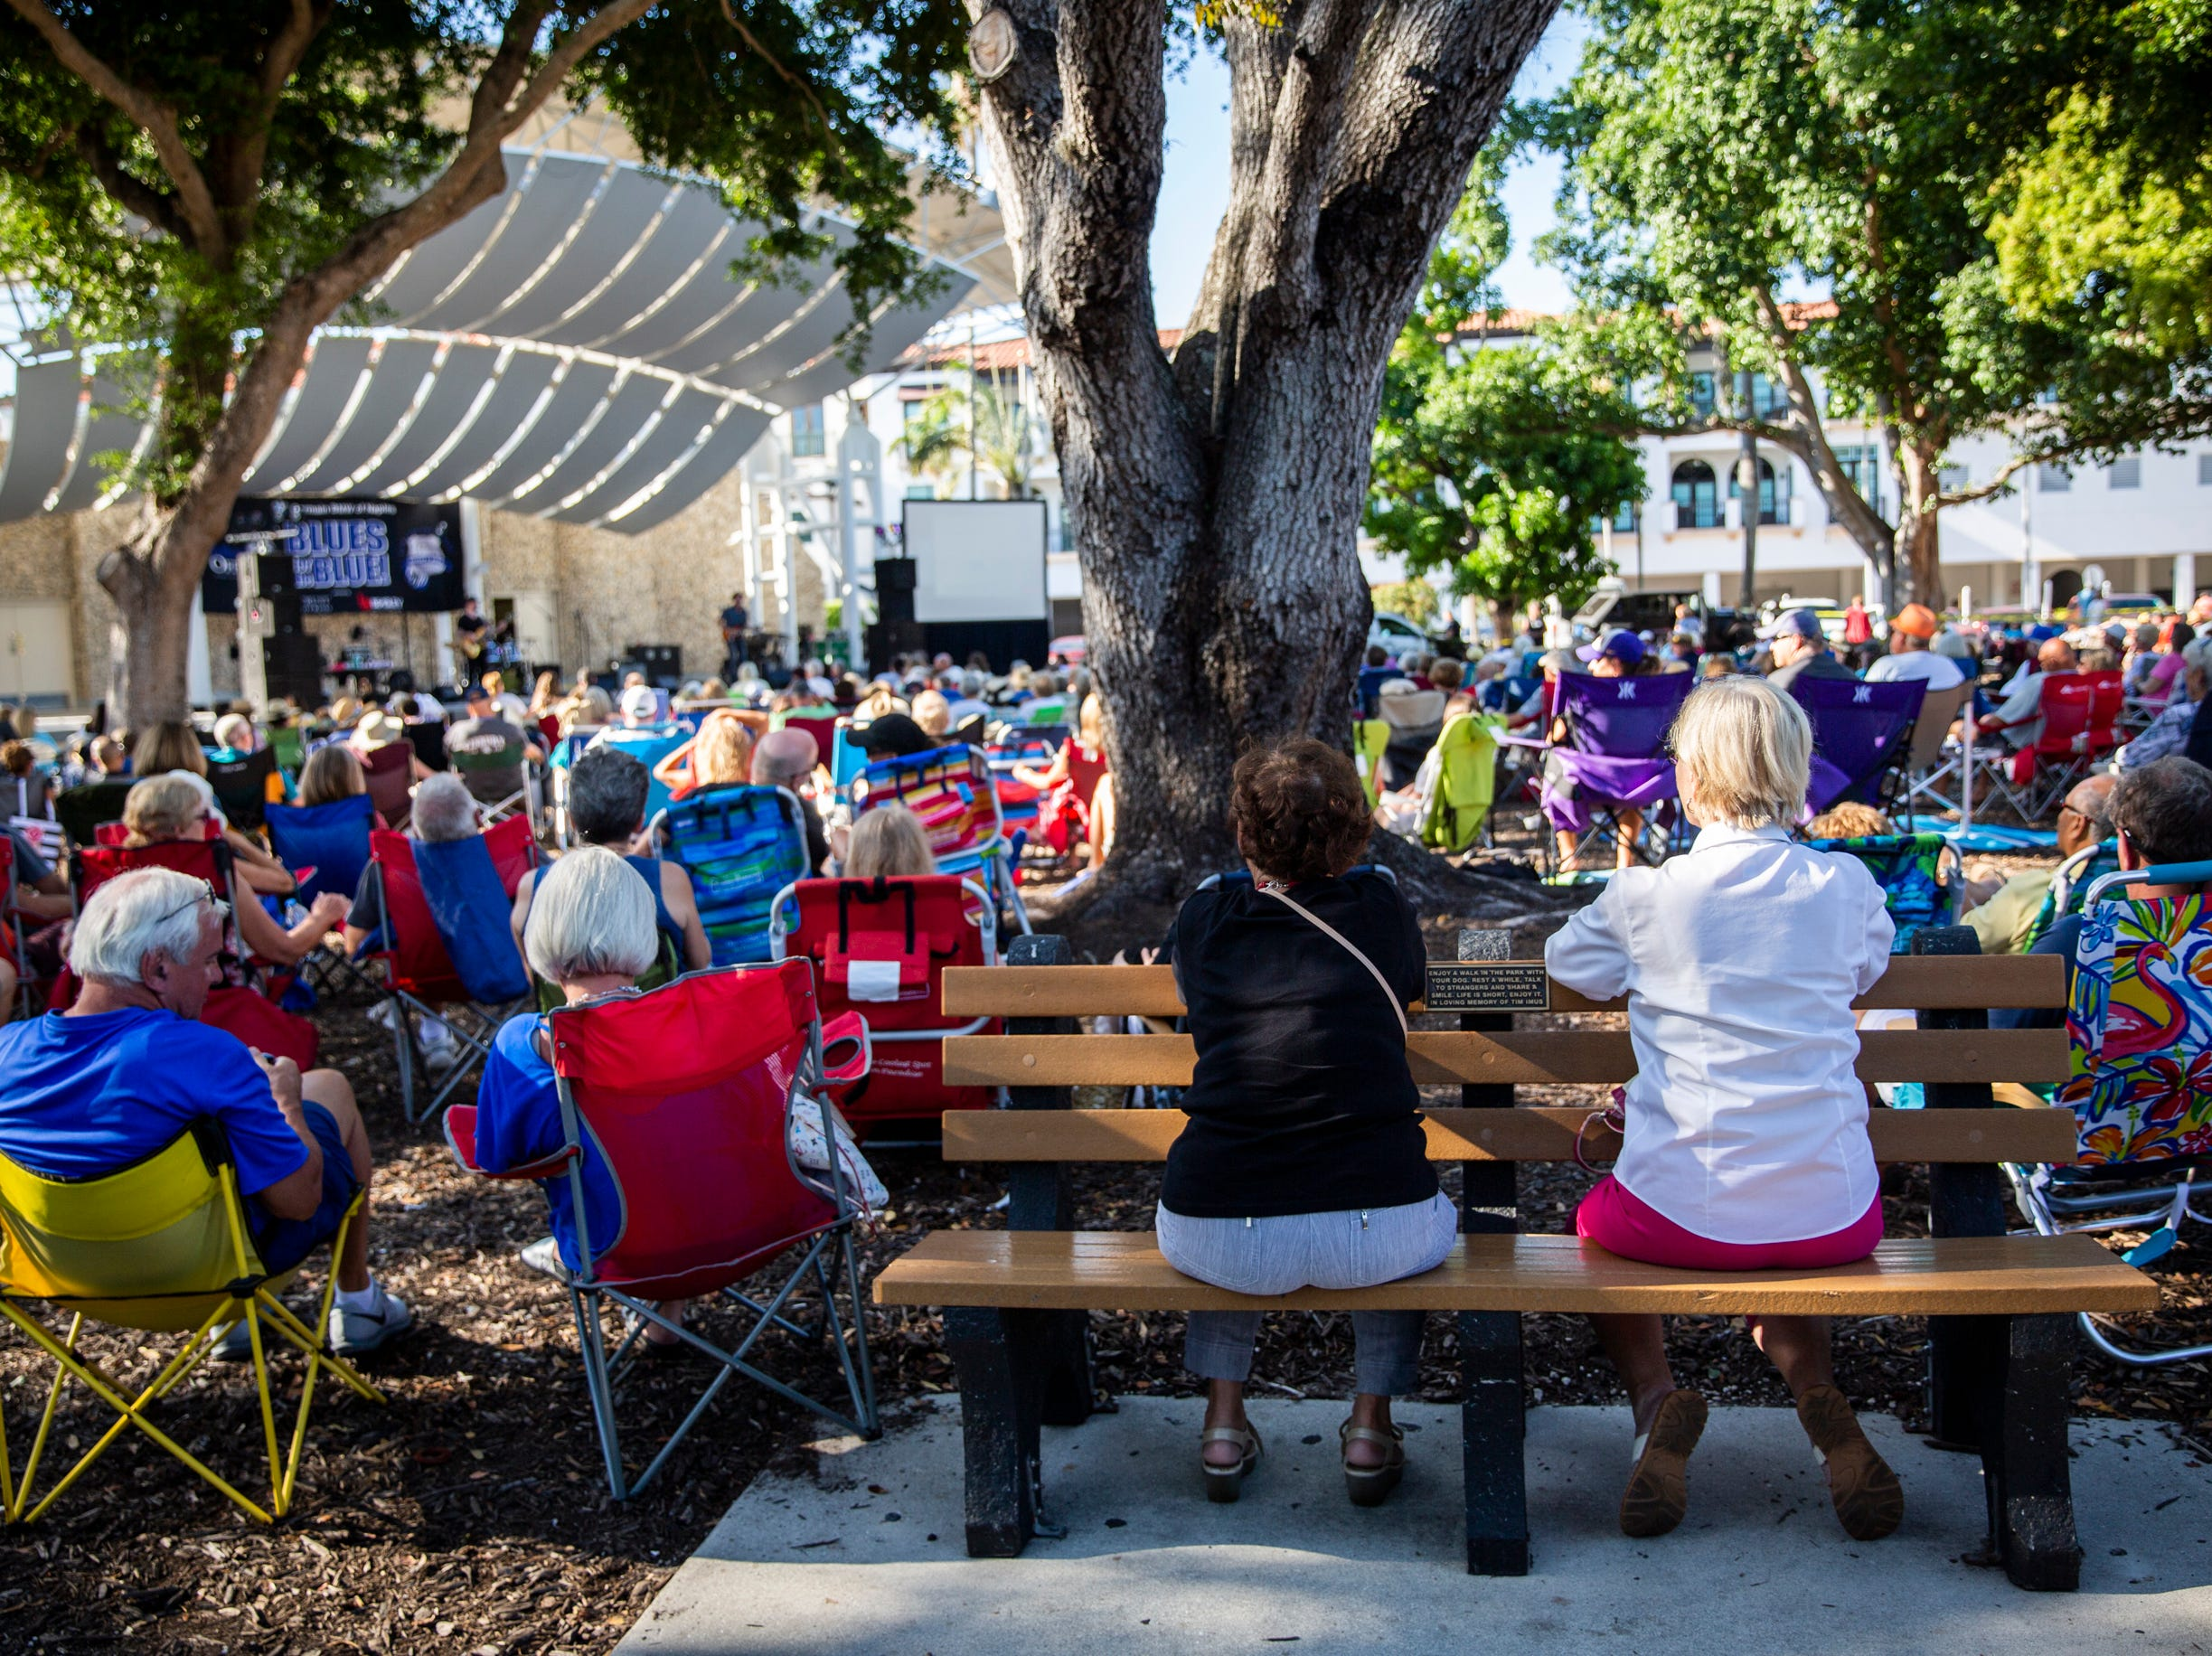 Folding chairs fill Cambier Park during the first annual Blues for the Blue, a benefit concert raising funds for The Fallen Officers and The Robert L. Zore Foundation, in Naples on Sunday, March 31, 2019.